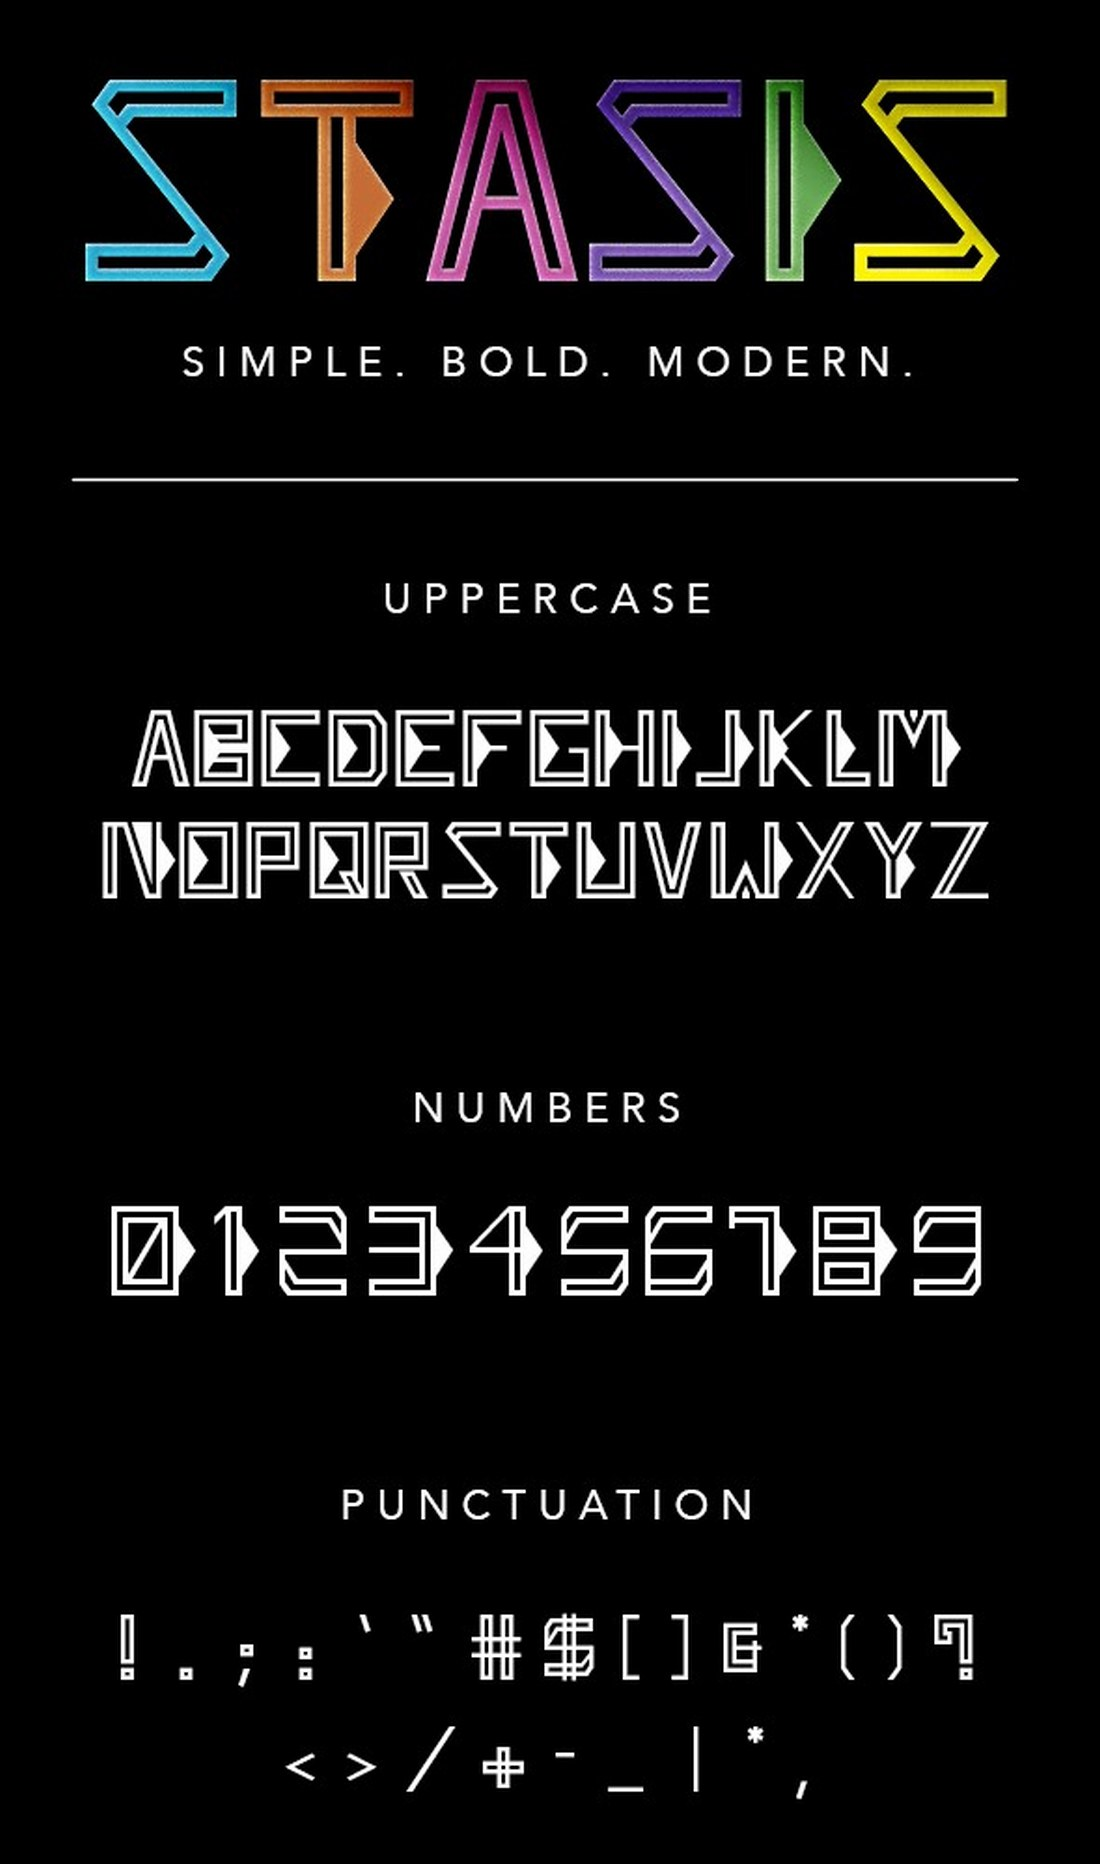 Stasis-Futuristic-Font 40+ Best Number Fonts for Displaying Numbers design tips